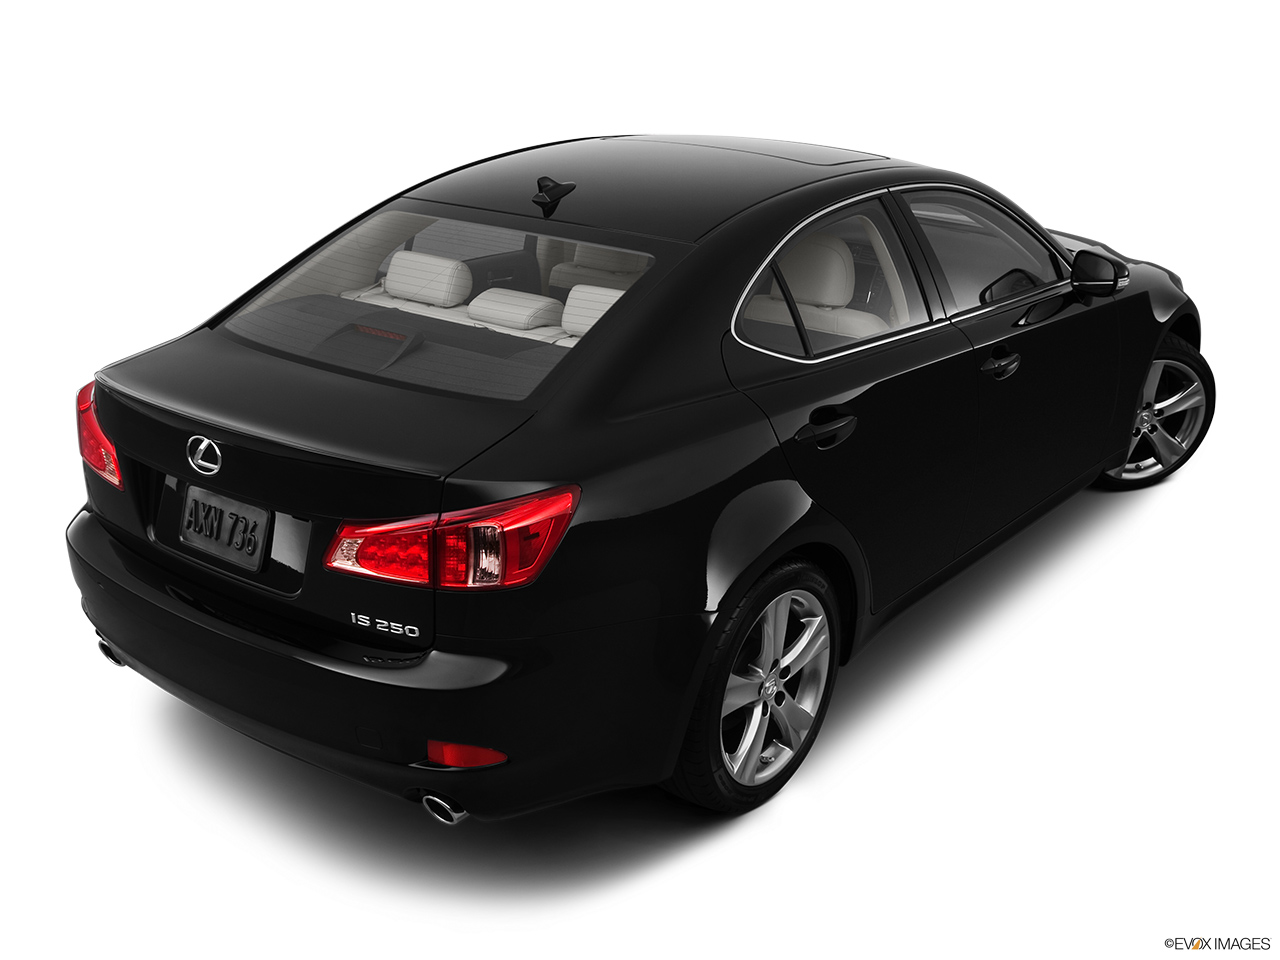 2012 Lexus IS 250 IS250 Rear 3/4 angle view.